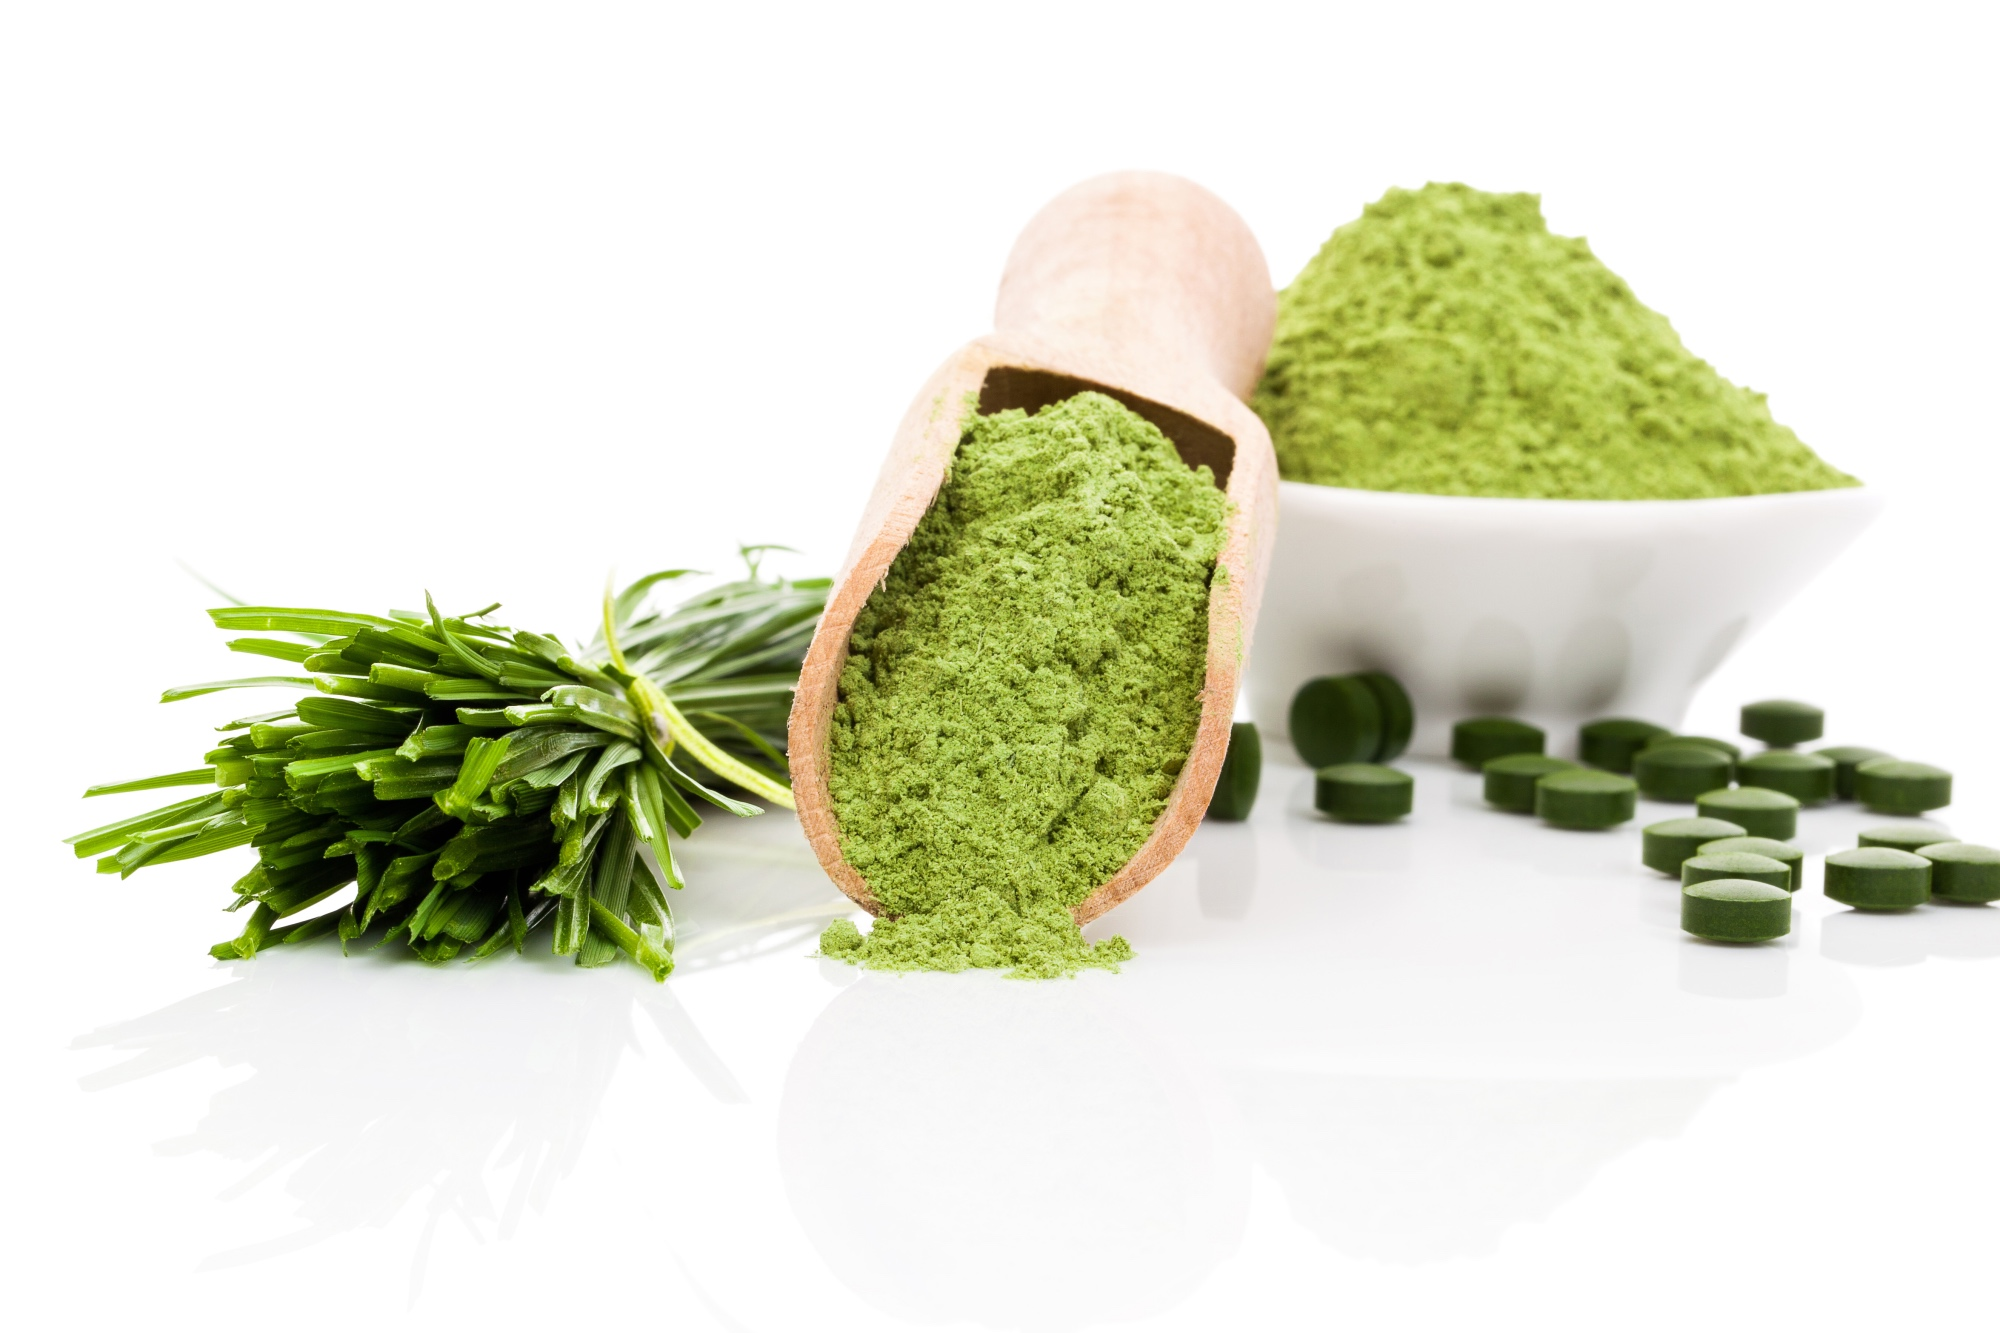 Superfood-spirulina-mlady-jacmen